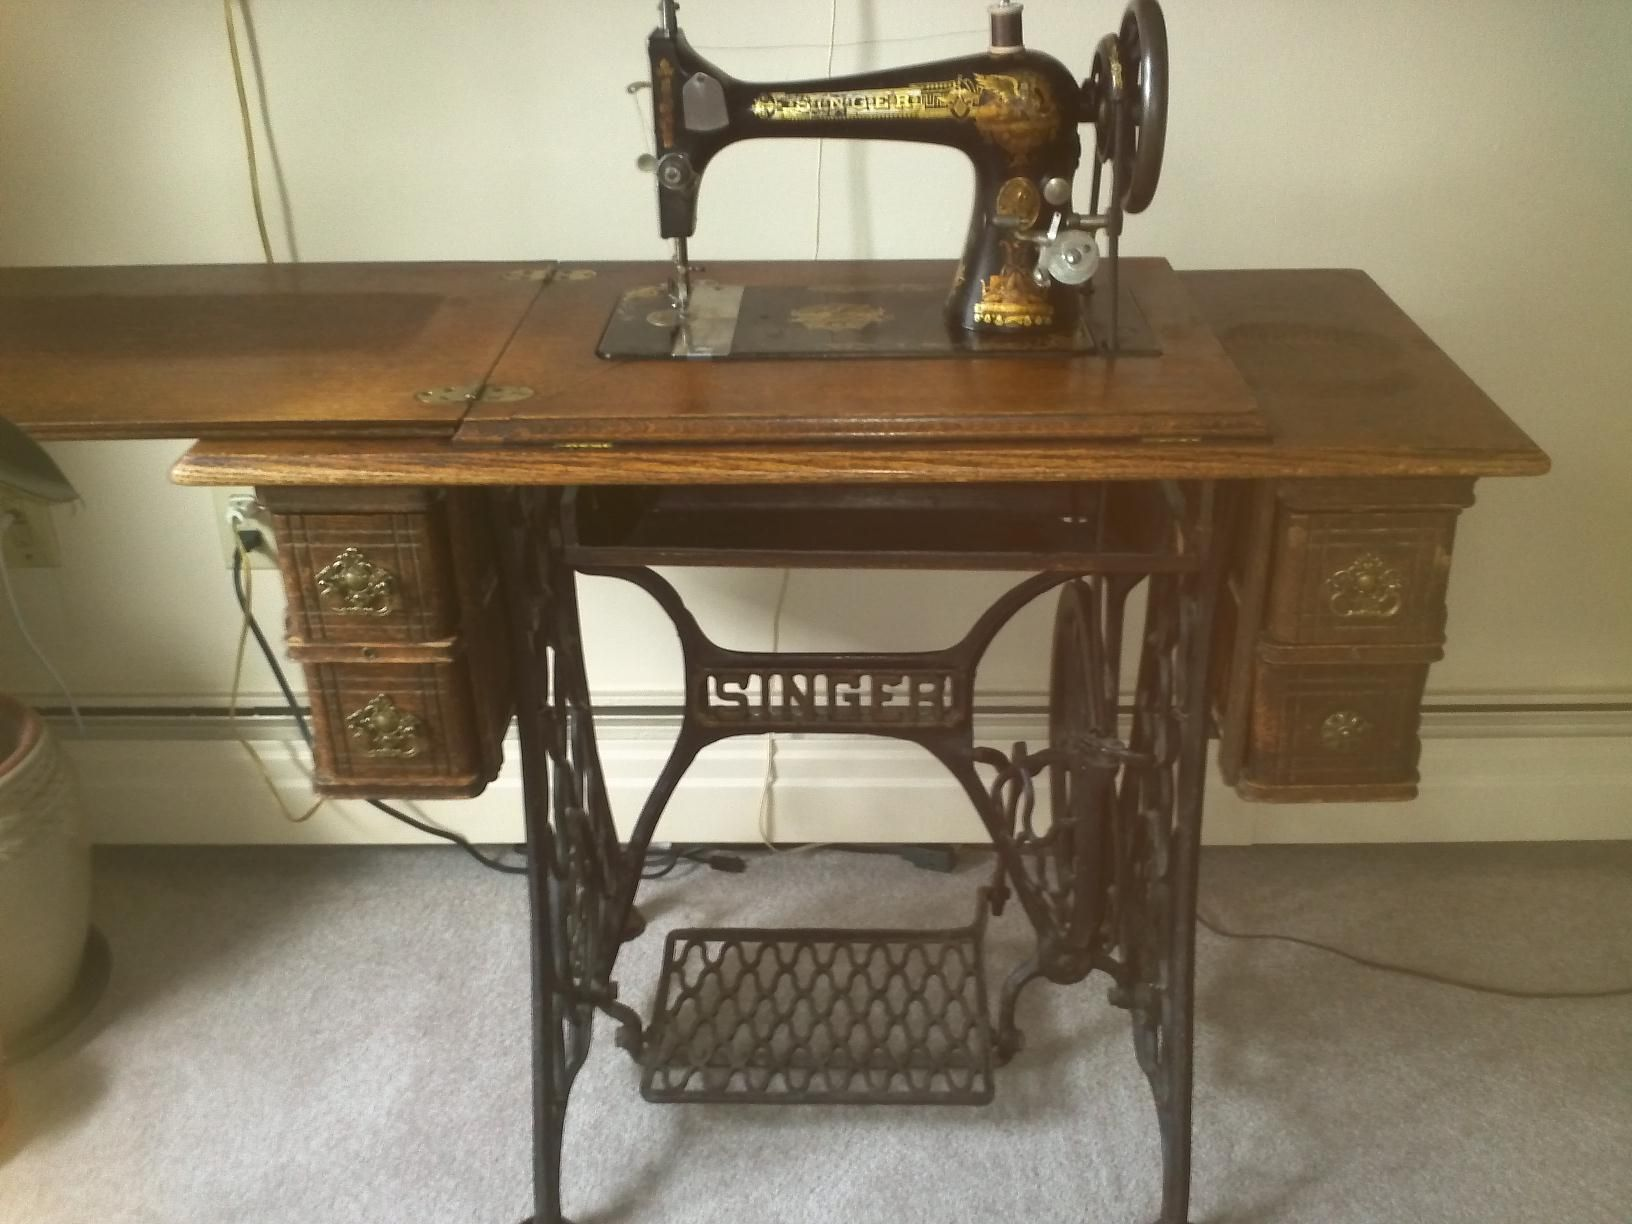 replacement kitchen cabinet i my s singer sewing machine which is dear 1871